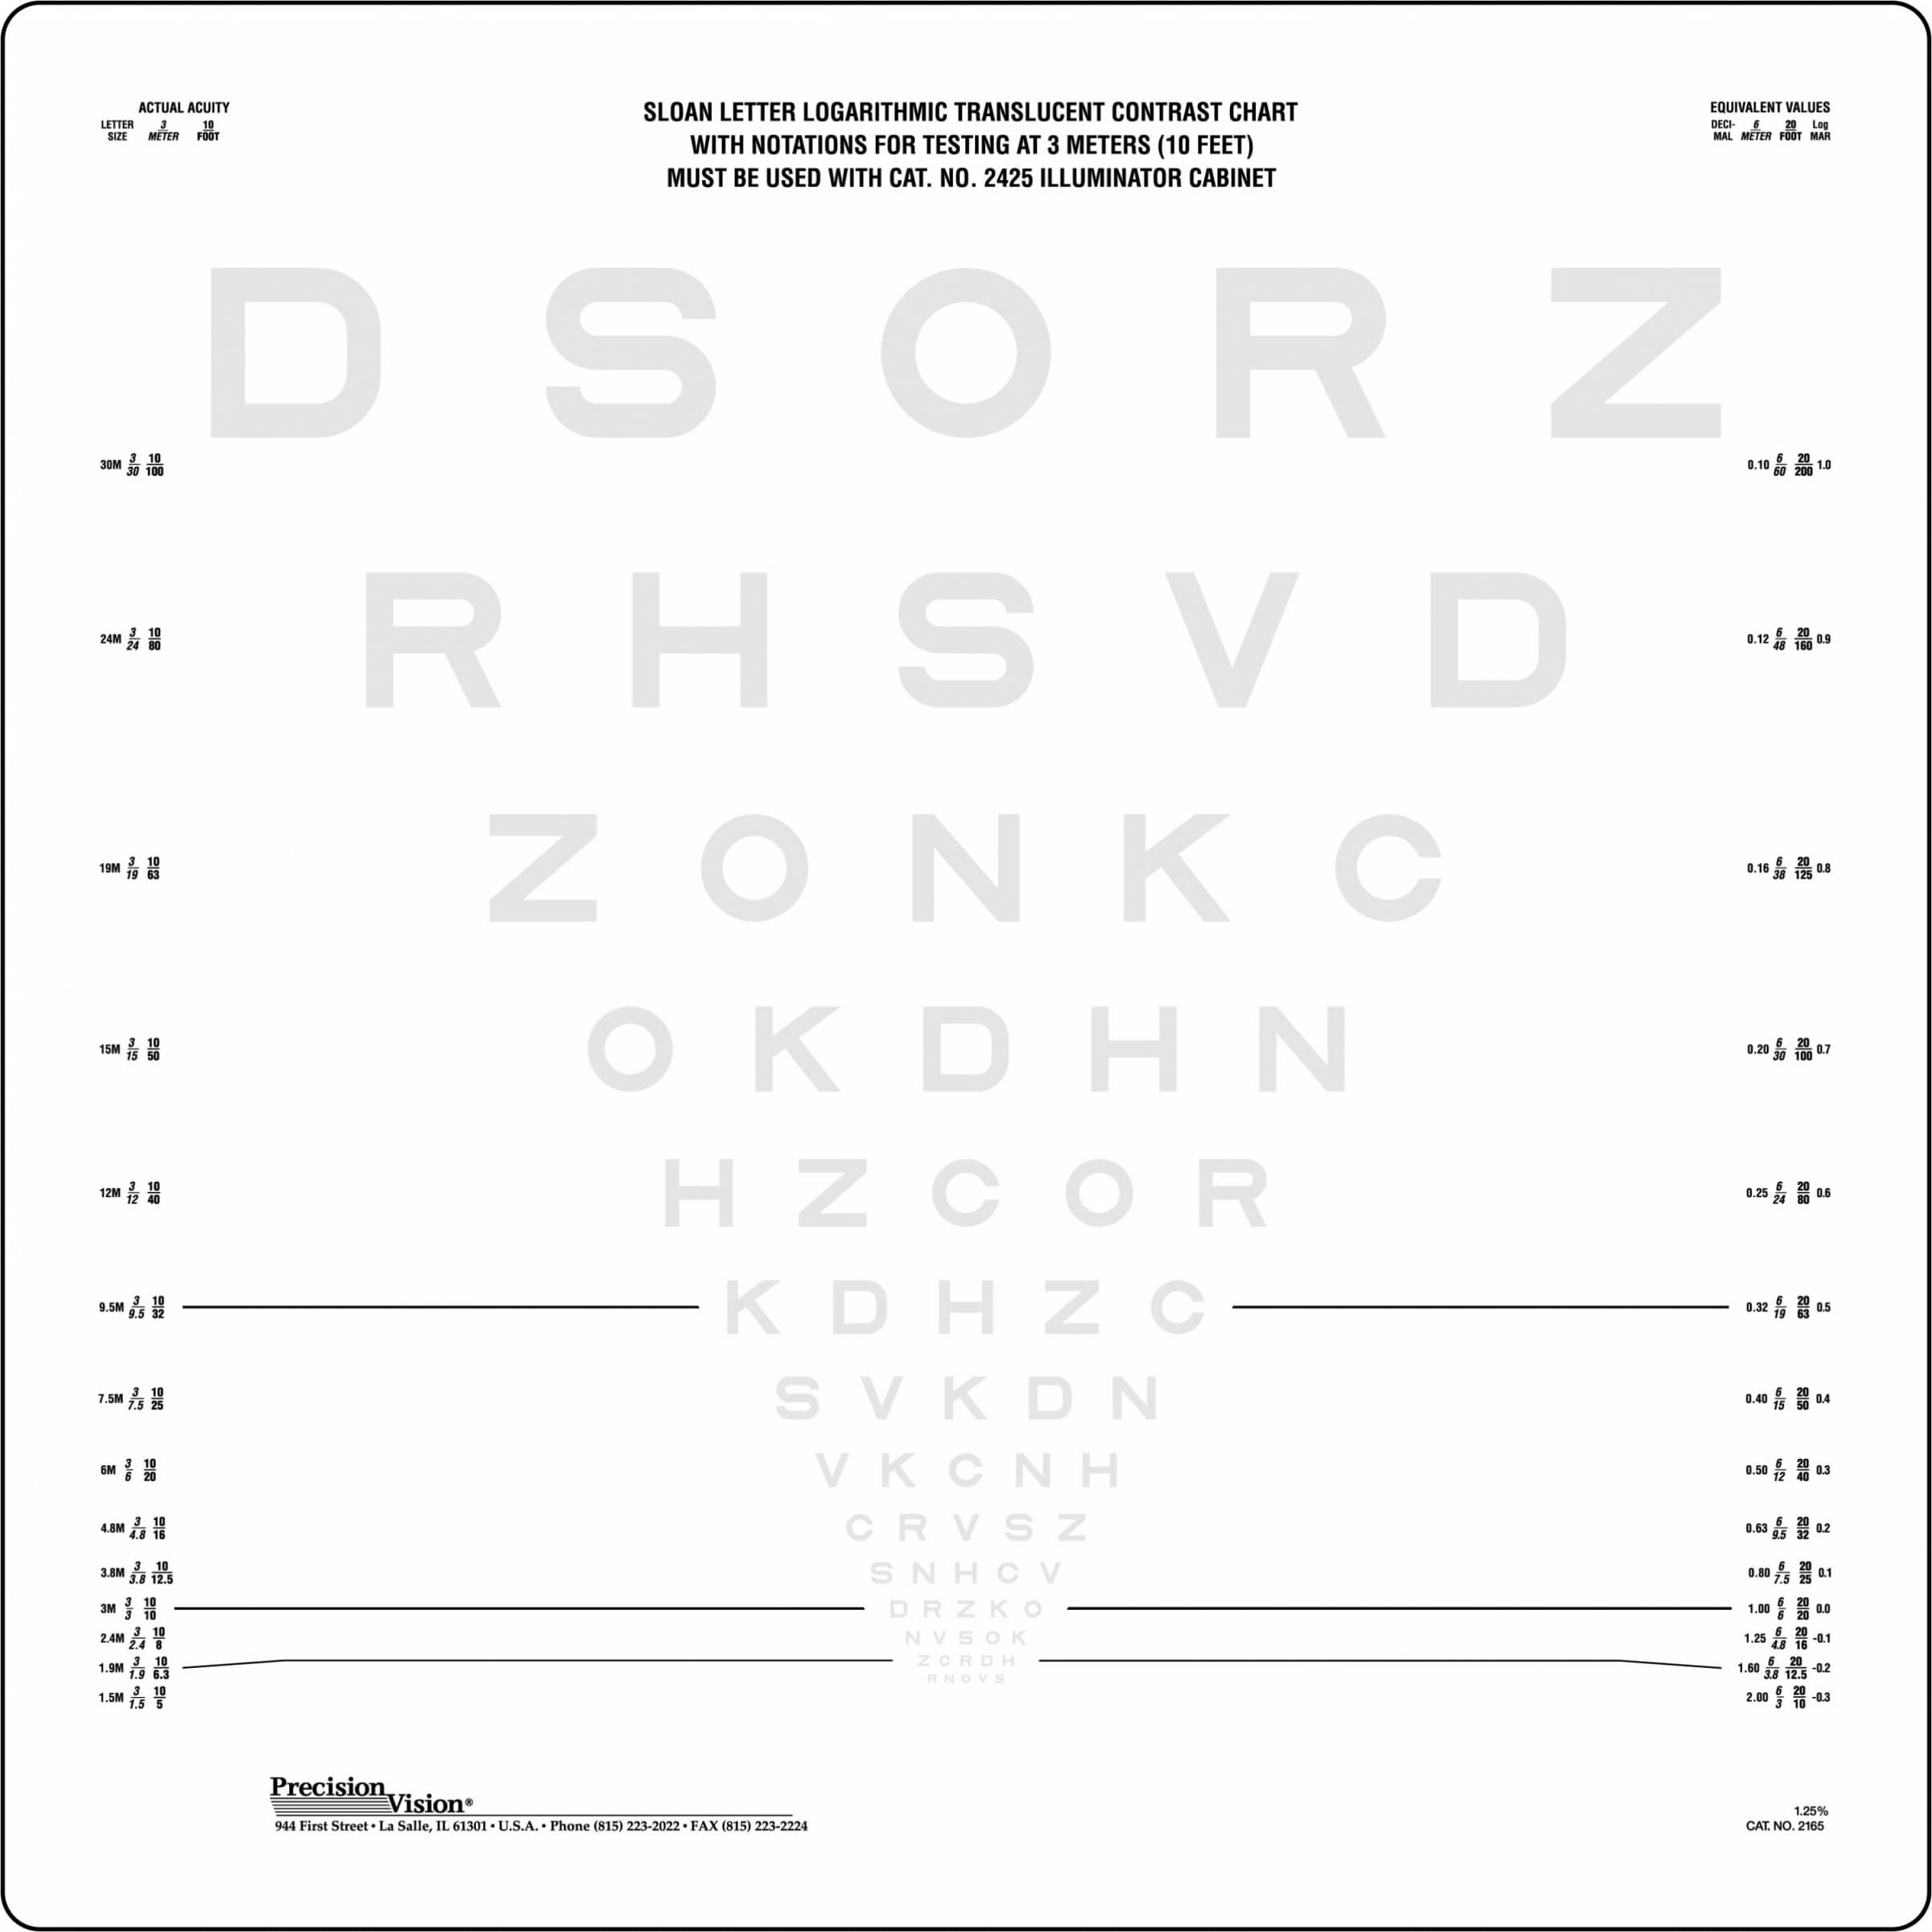 3 Meter 10 Ft Low Contrast Etdrs Eye Charts Precision Vision